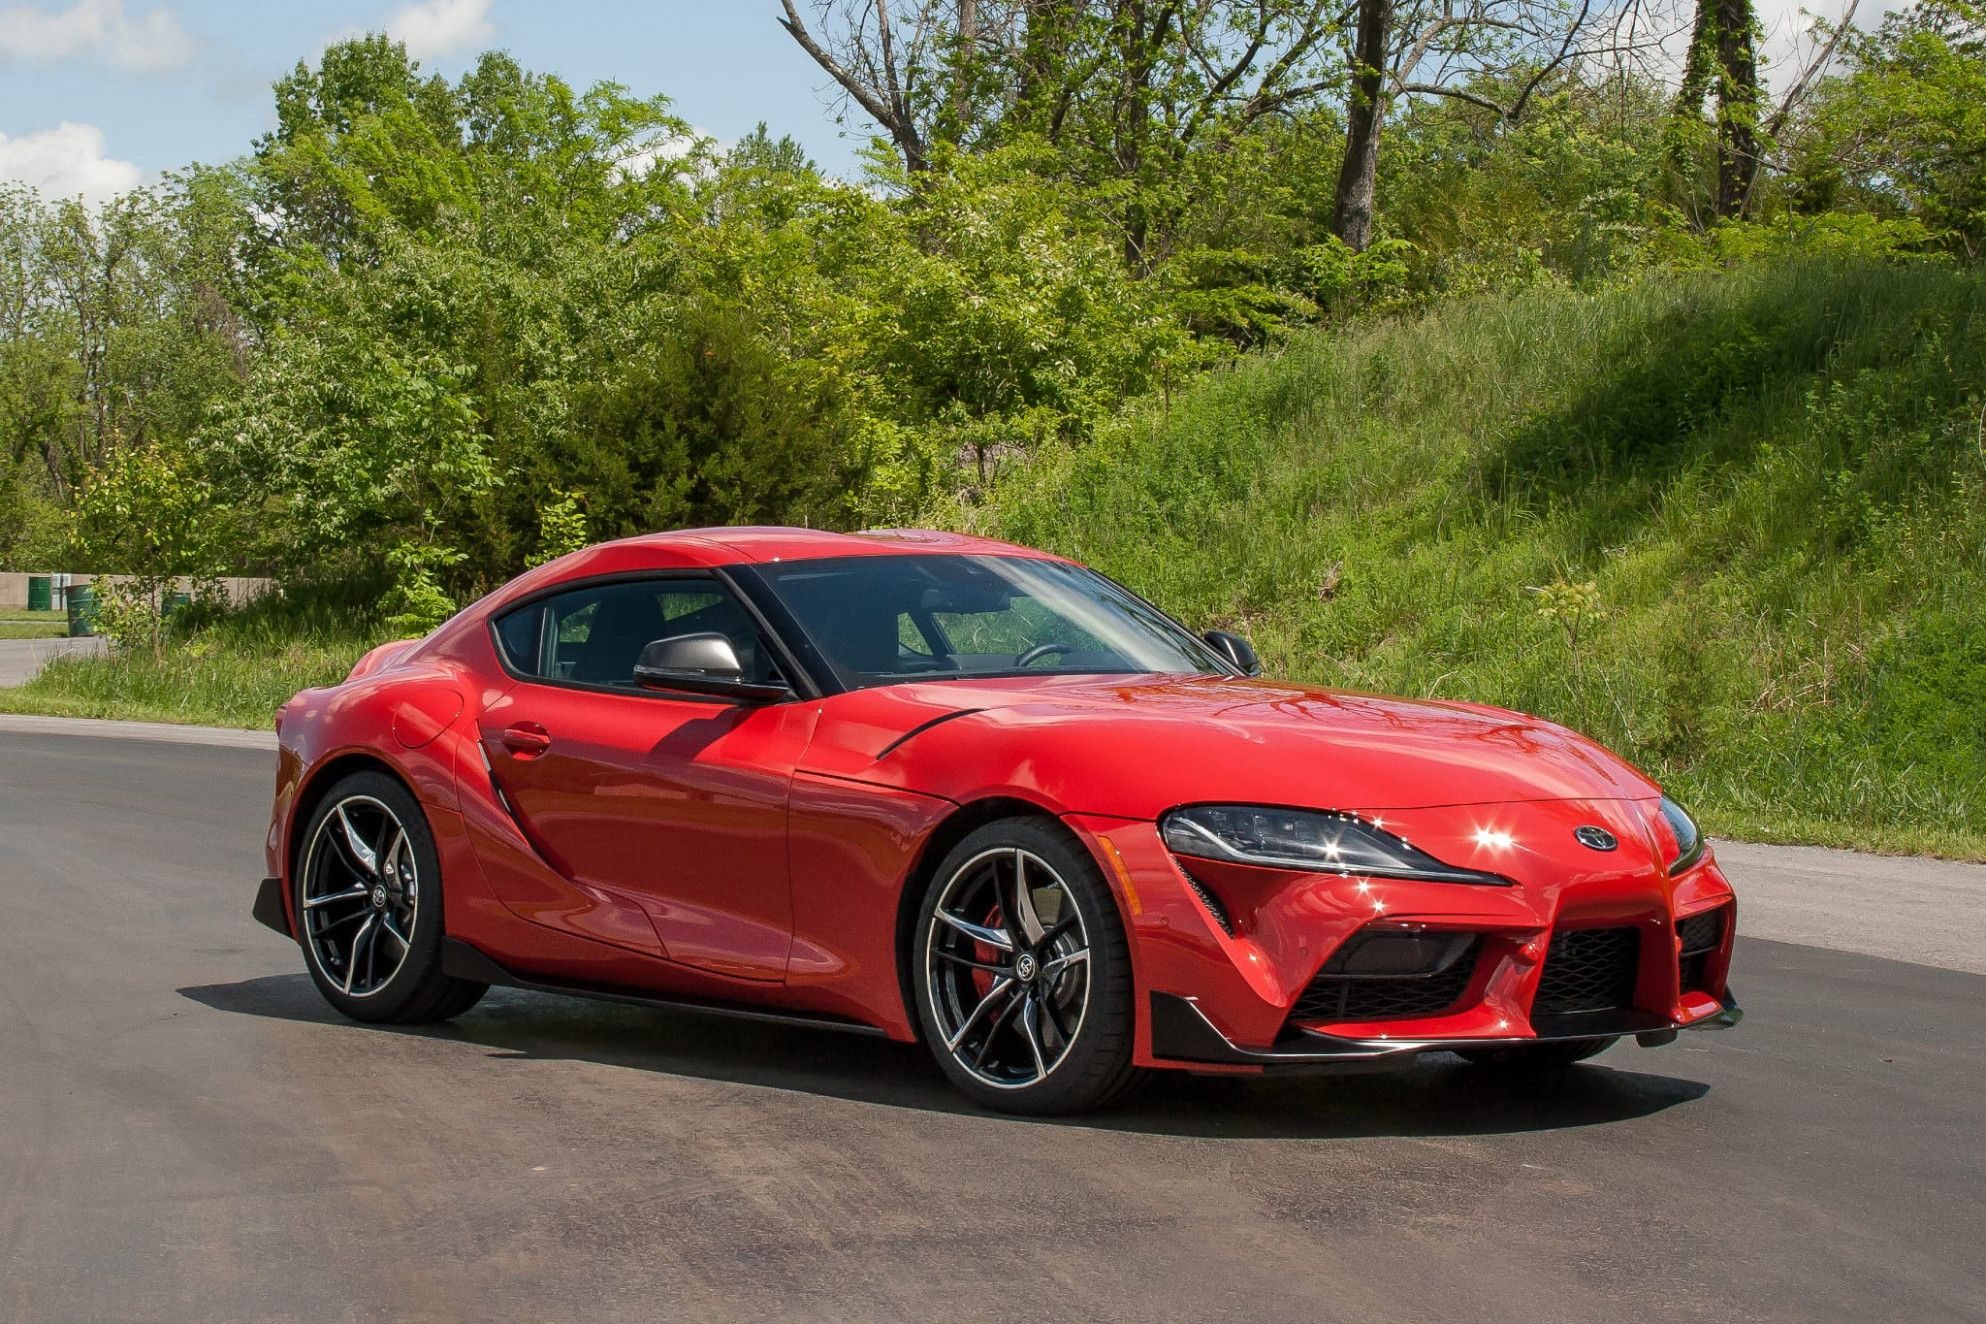 110 Toyota Supra 110 10 Premium Launch Edition Price Interior And In 2020 Toyota Supra Cool Sports Cars New Toyota Supra